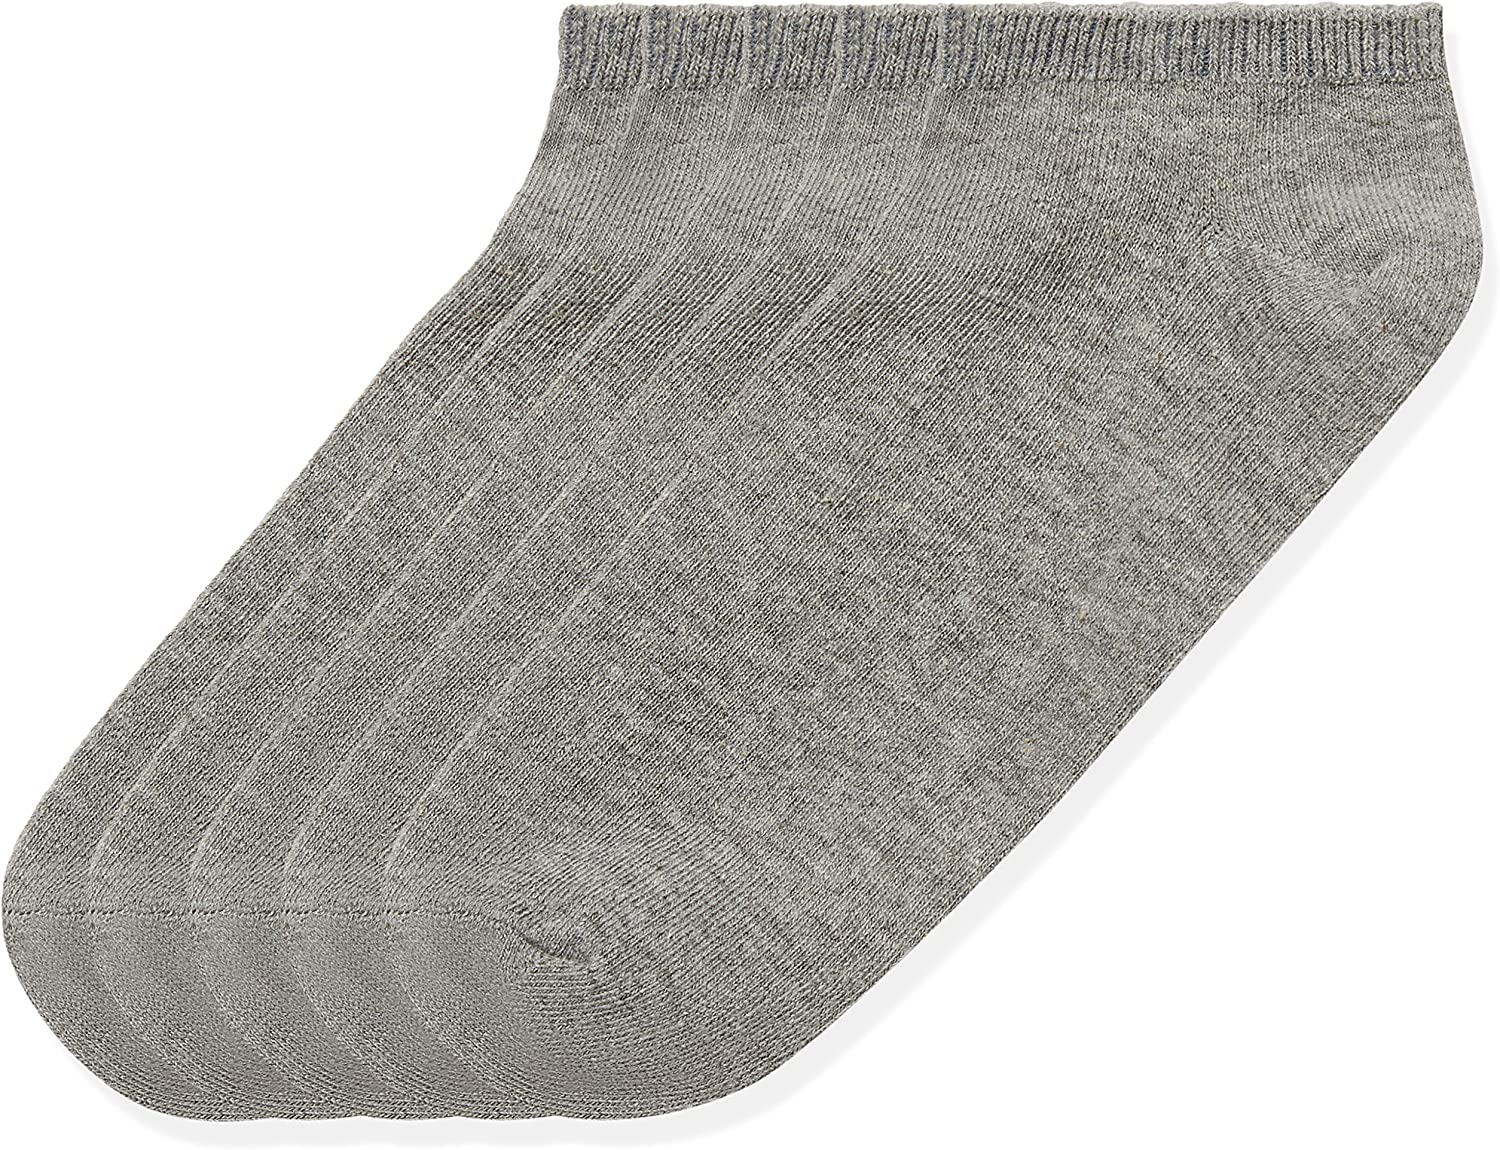 Calcetines Invisbles para Mujer Pack de 5 Marca find